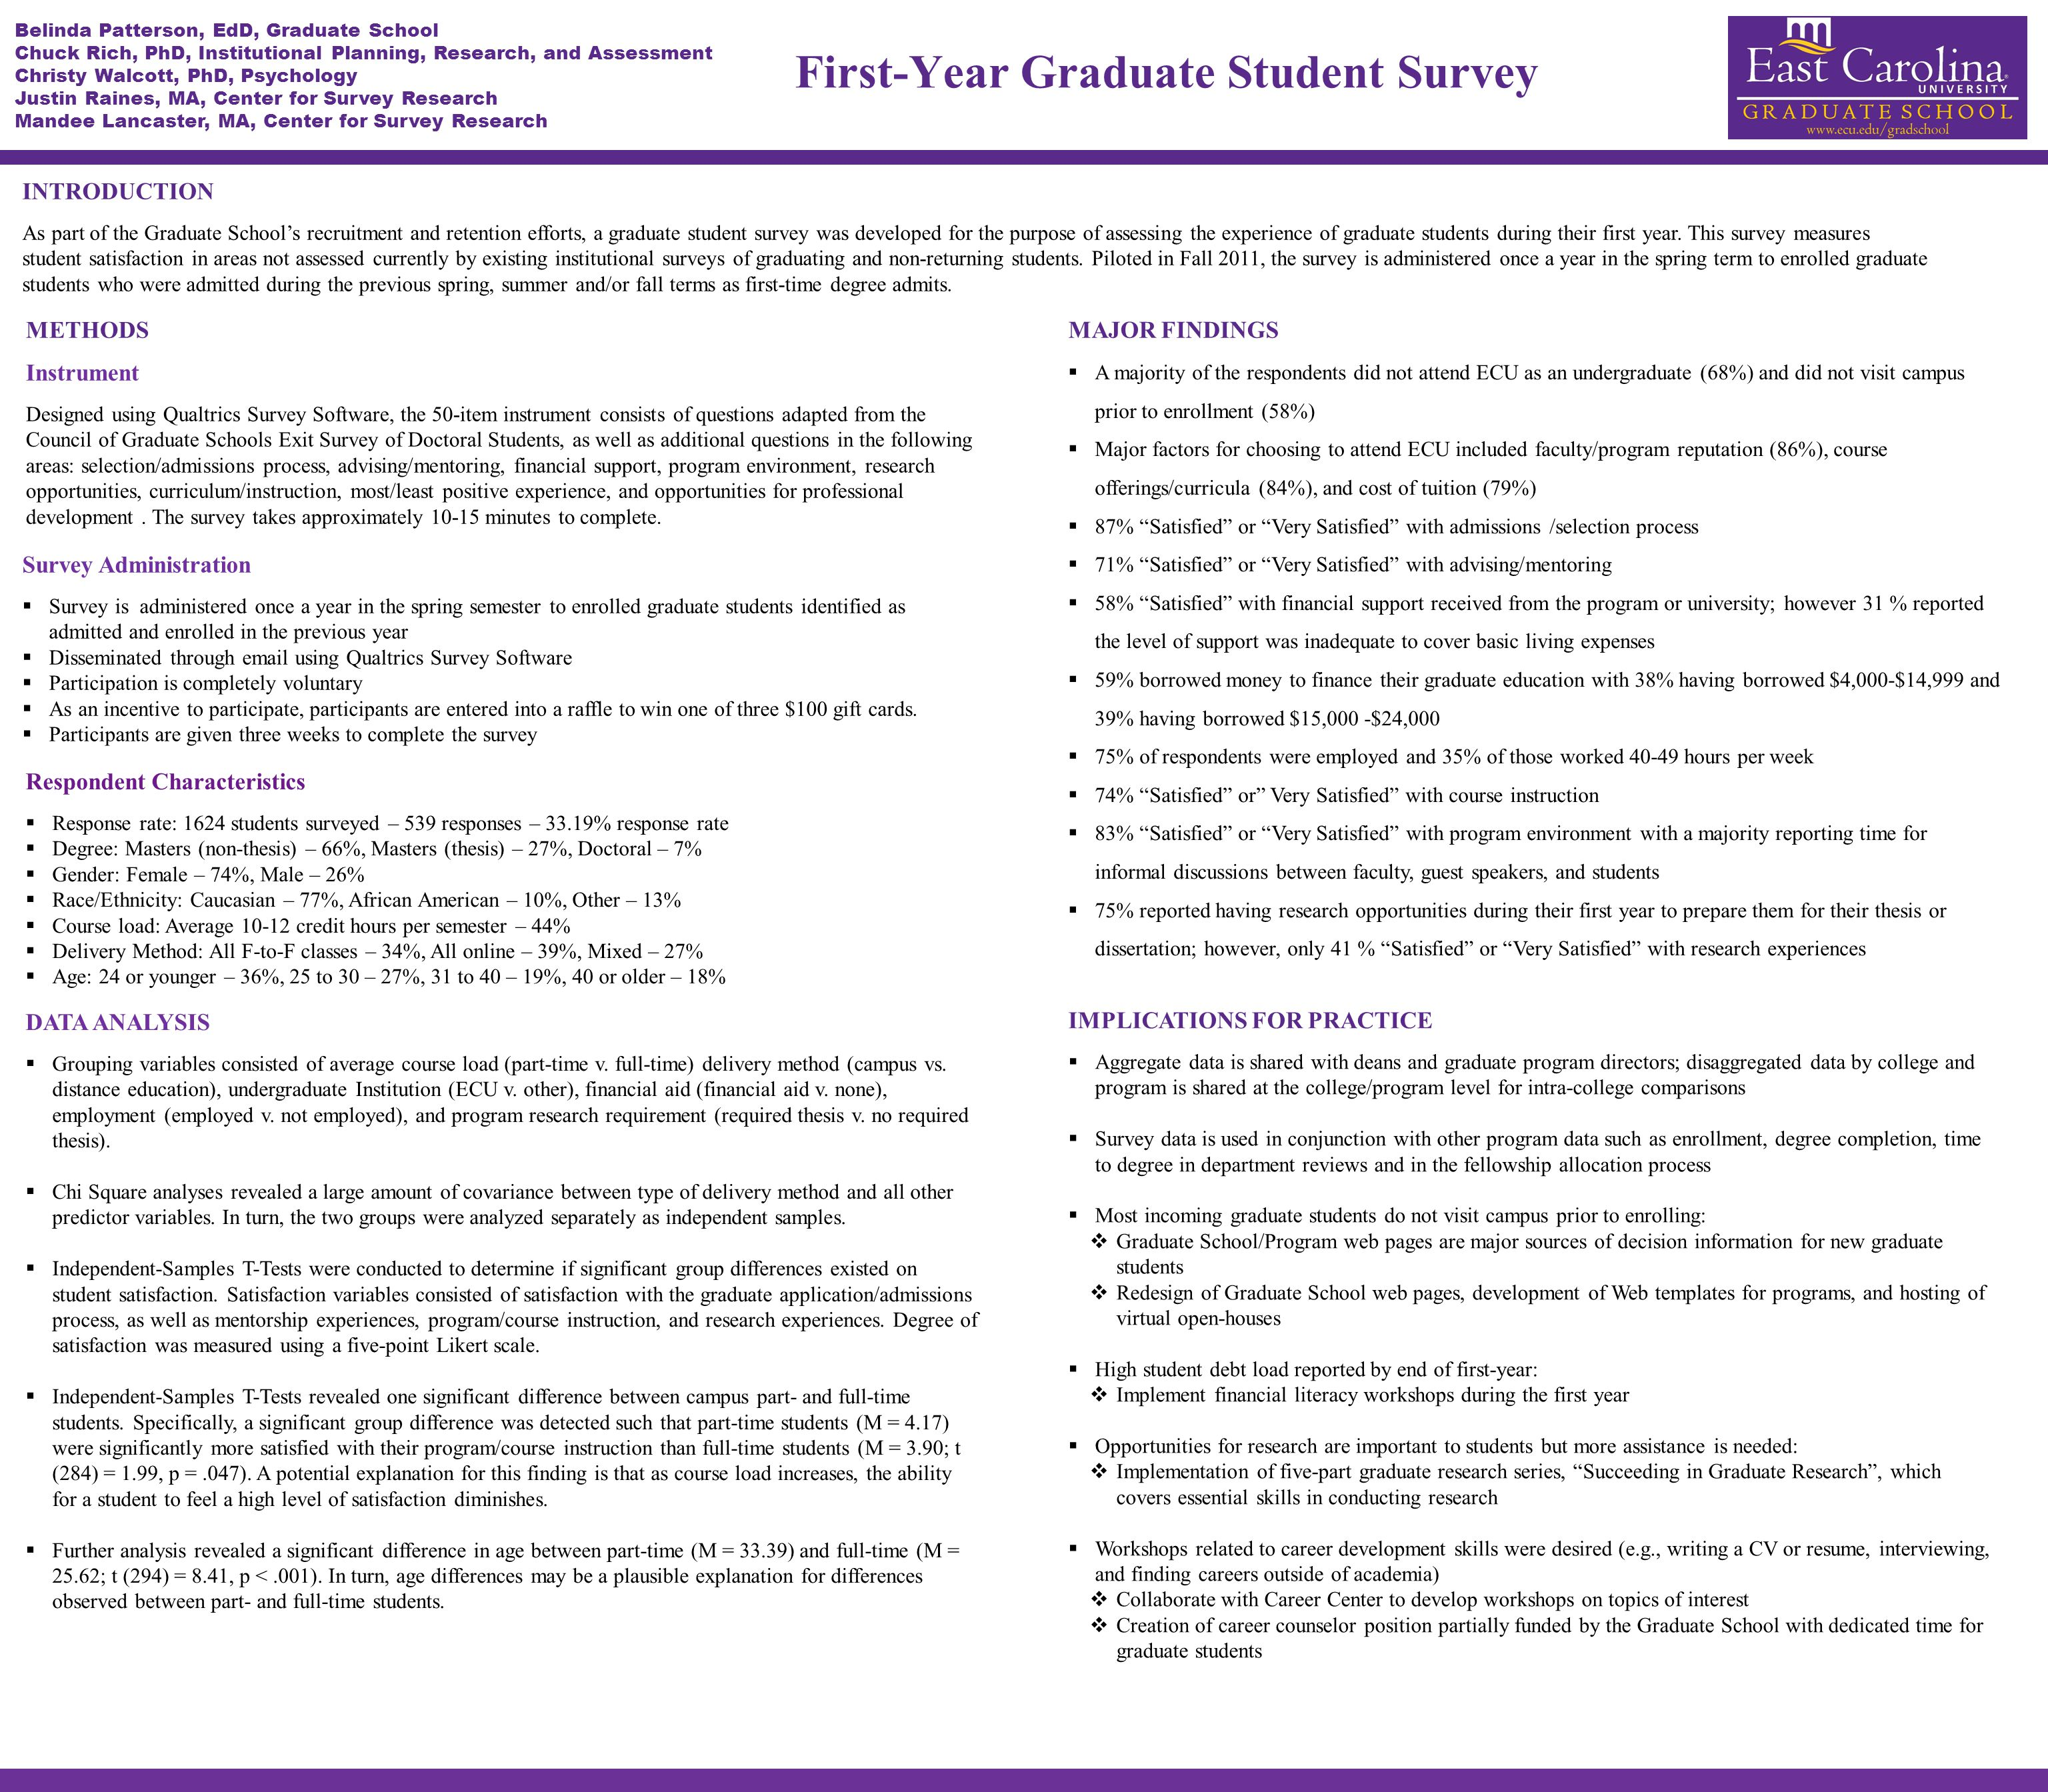 First-Year Graduate Student Survey INTRODUCTION As part of the Graduate Schools recruitment and retention efforts, a graduate student survey was developed for the purpose of assessing the experience of graduate students during their first year.